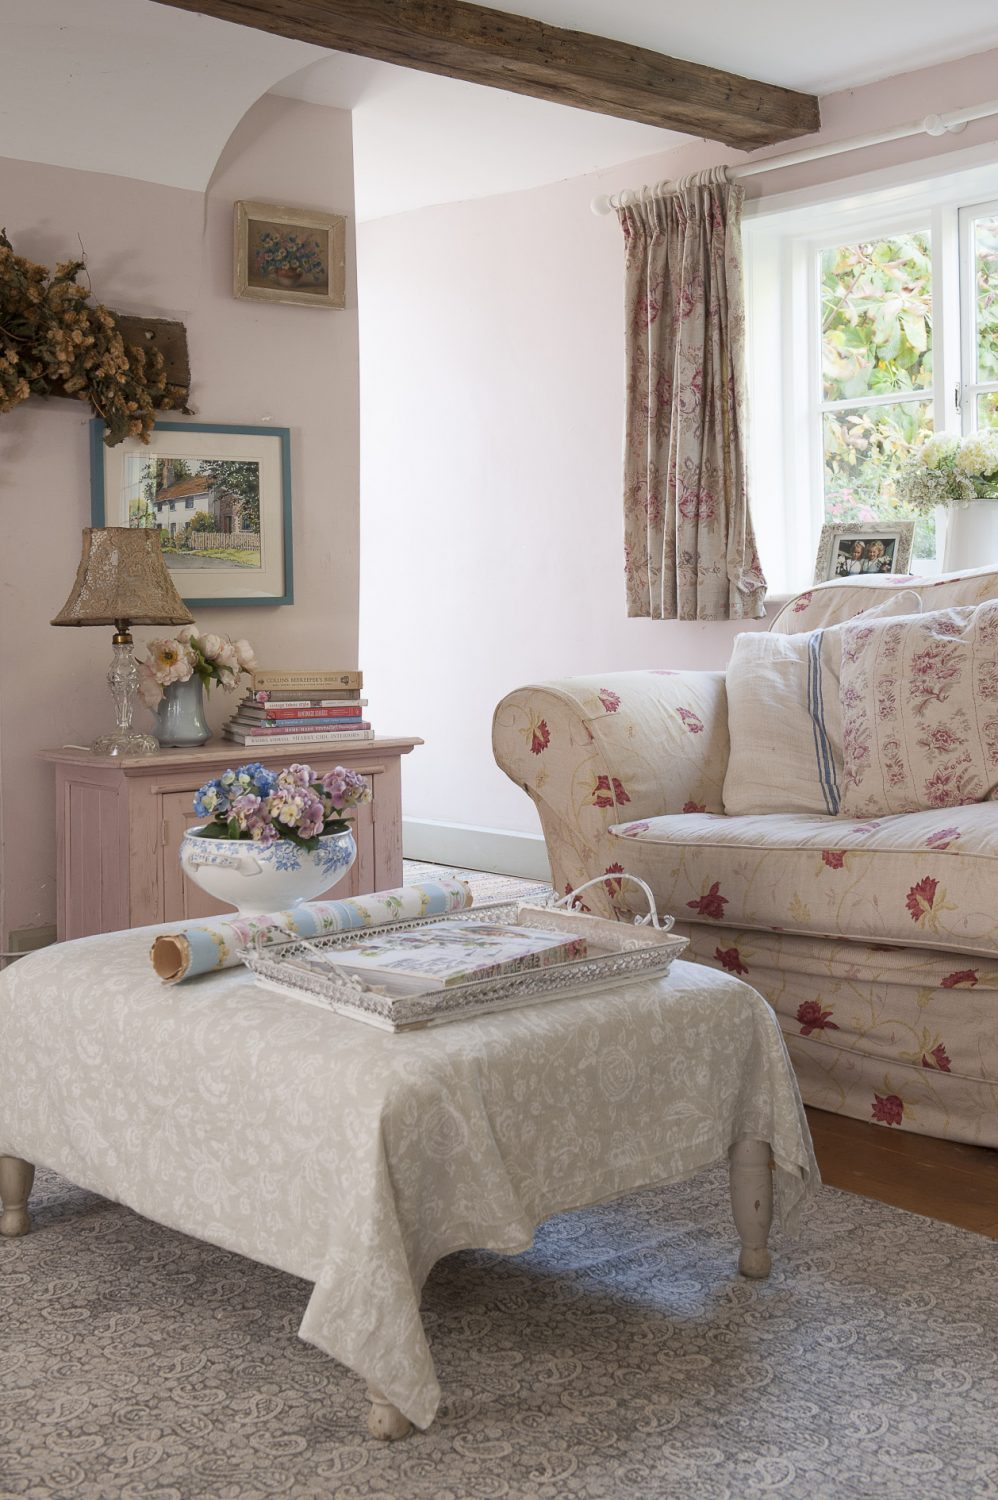 Light-coloured homeware and furnishings help to make the most of the natural light